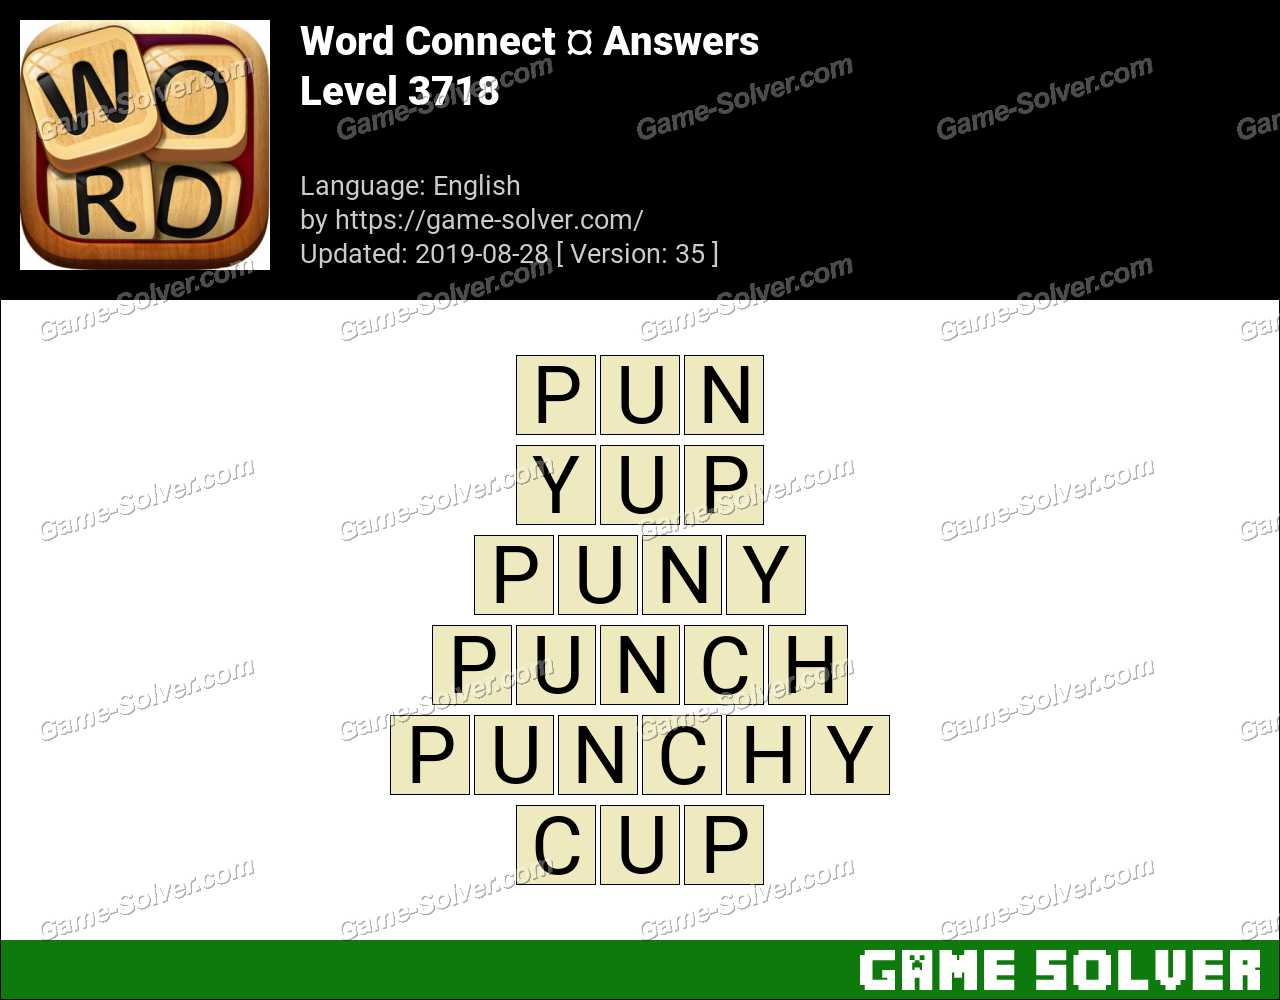 Word Connect Level 3718 Answers